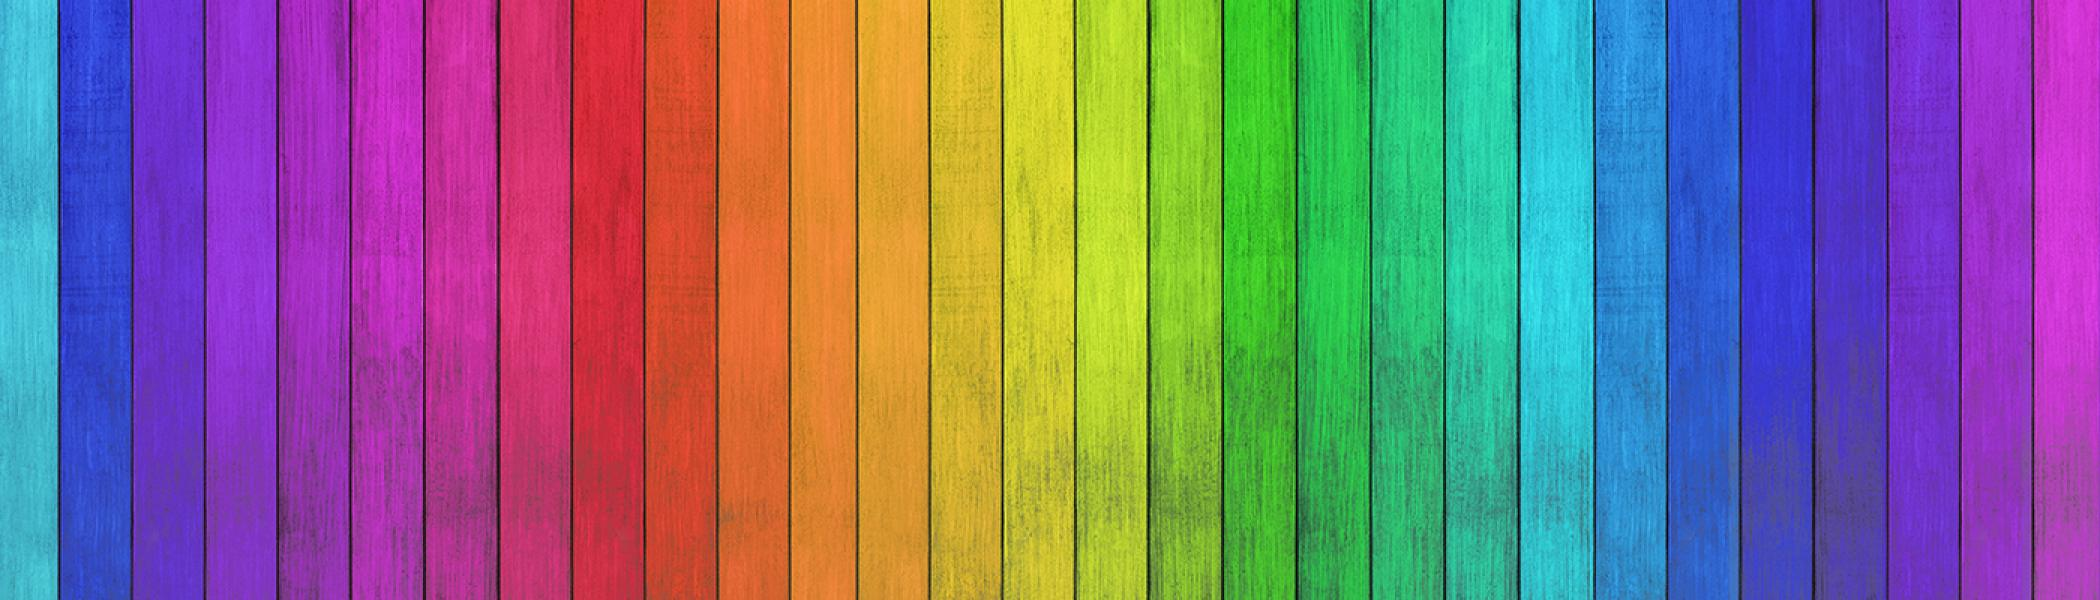 Colour bands or the spectrum